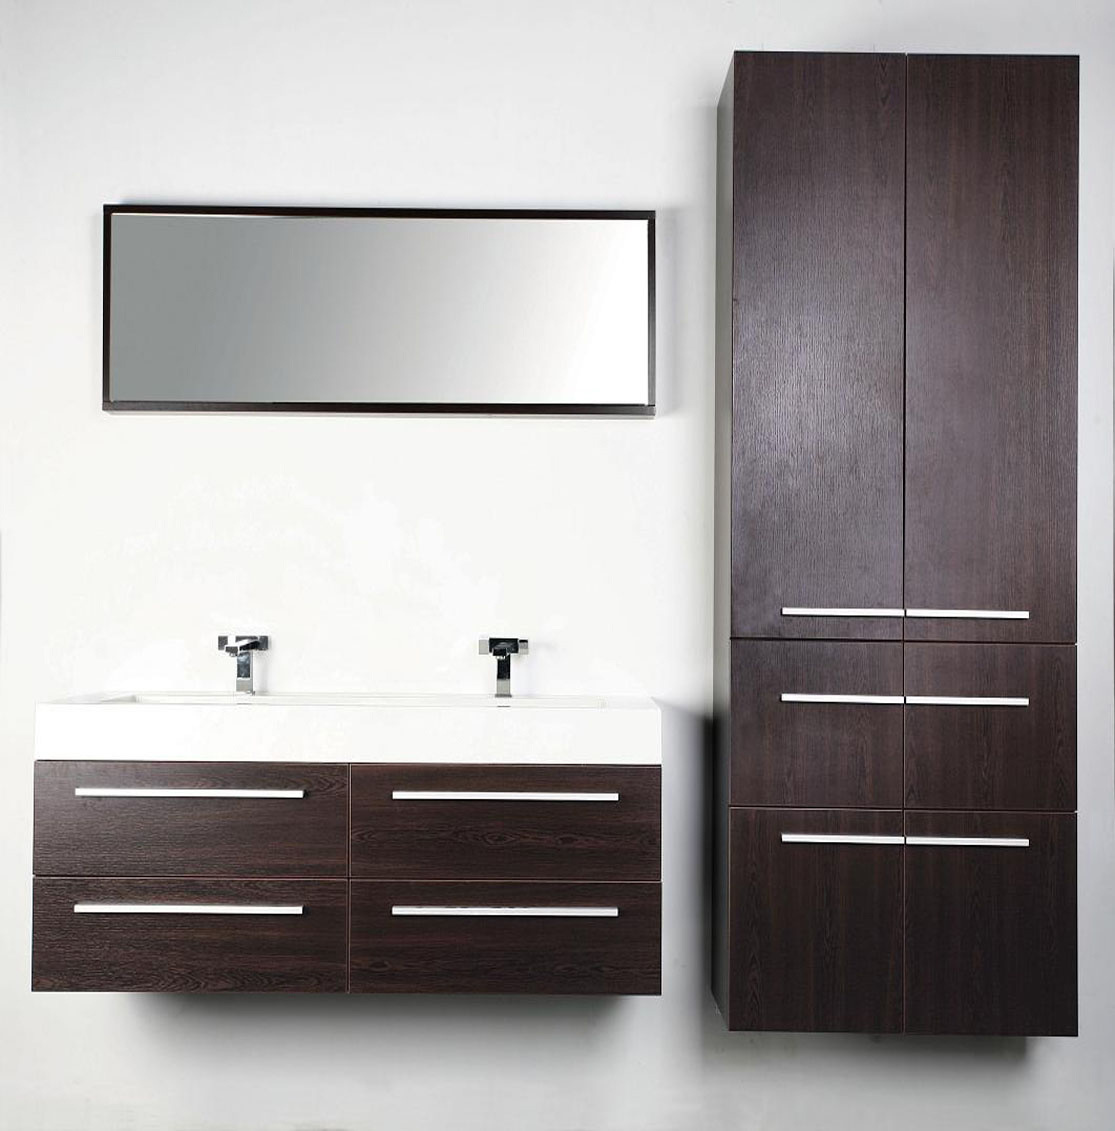 Jcpenney bathroom furniture